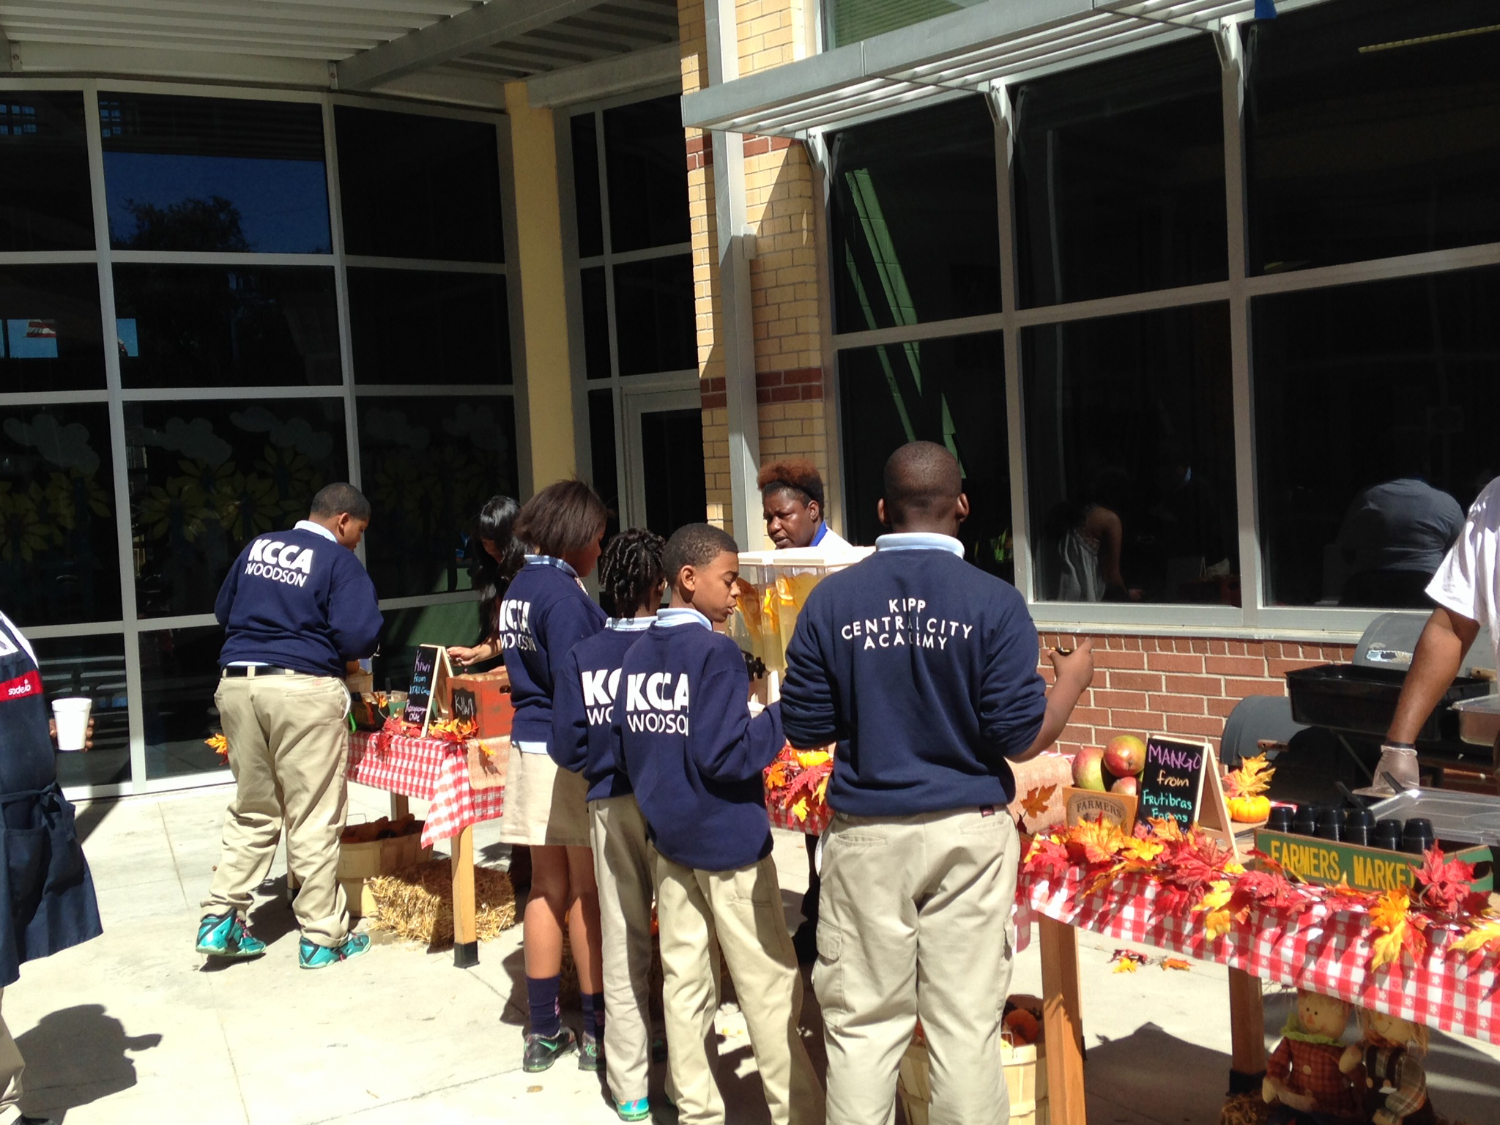 KIPP Central City Academy - Farmers Market'